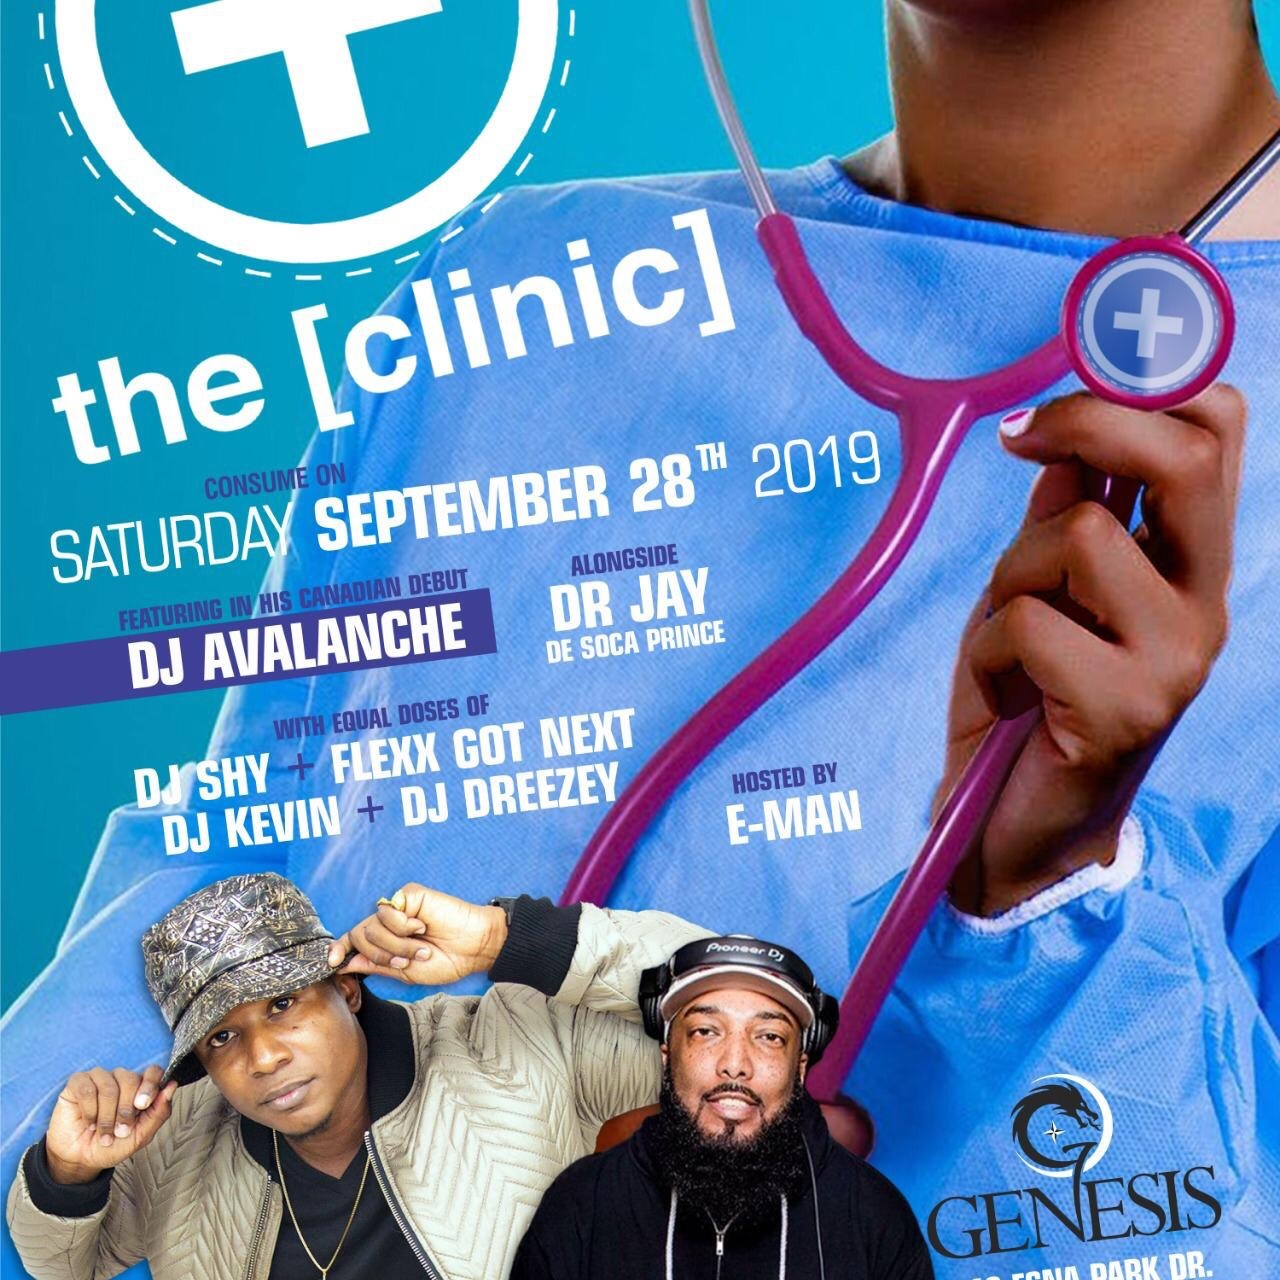 The Clinic @Genesis